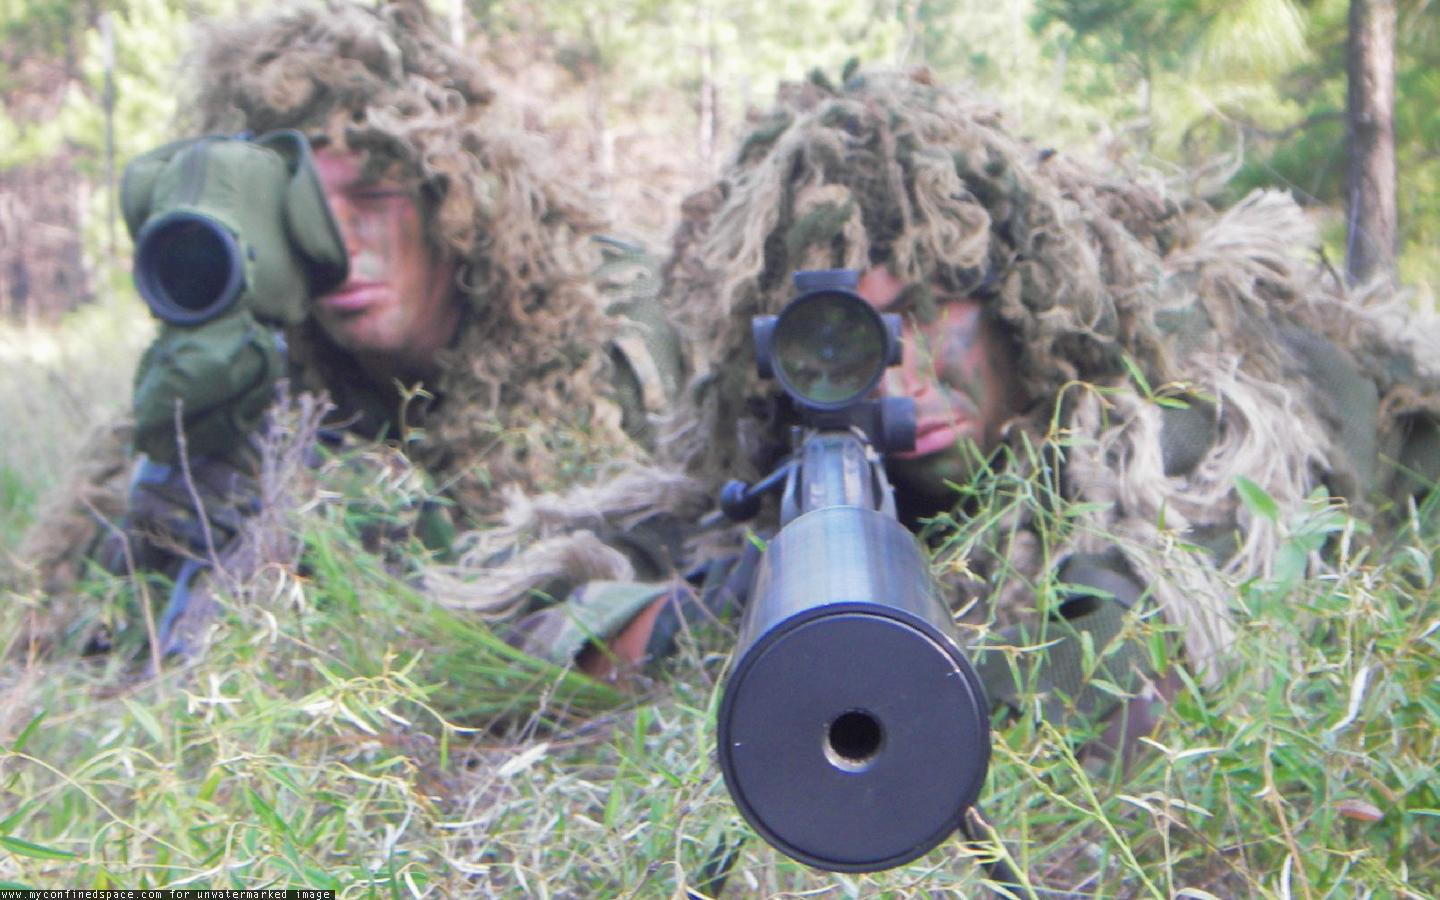 Us Army Sniper Ghillie 10330 Hd Wallpapers in War n Army   Imagesci 1440x900